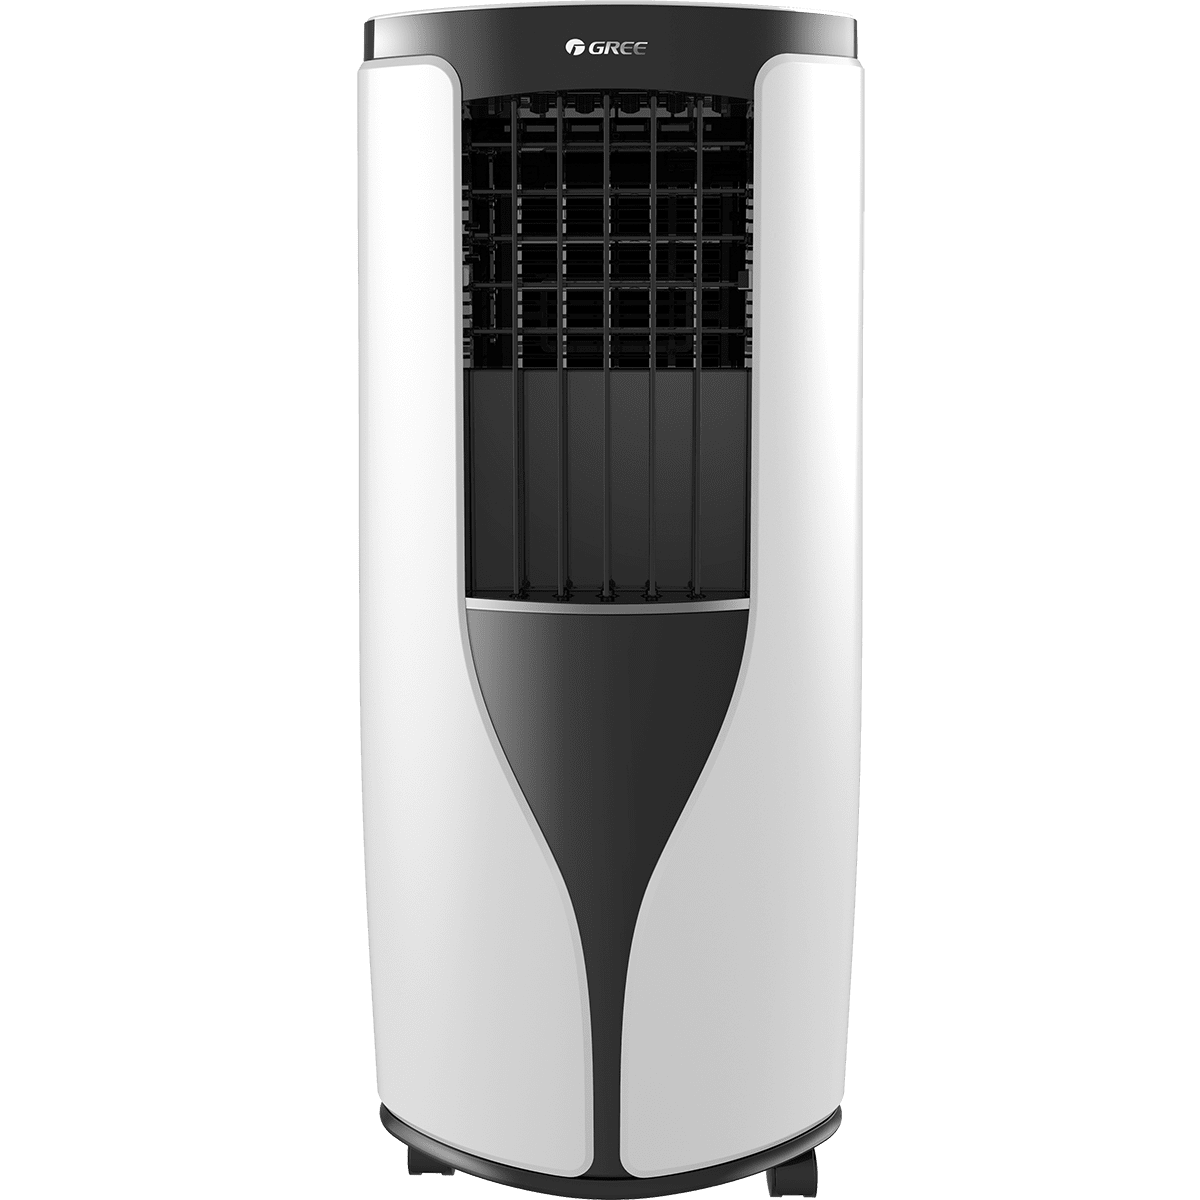 Gree 10,000 BTU Evaporative Portable Air Conditioner (G16-10PACSH) gr6286